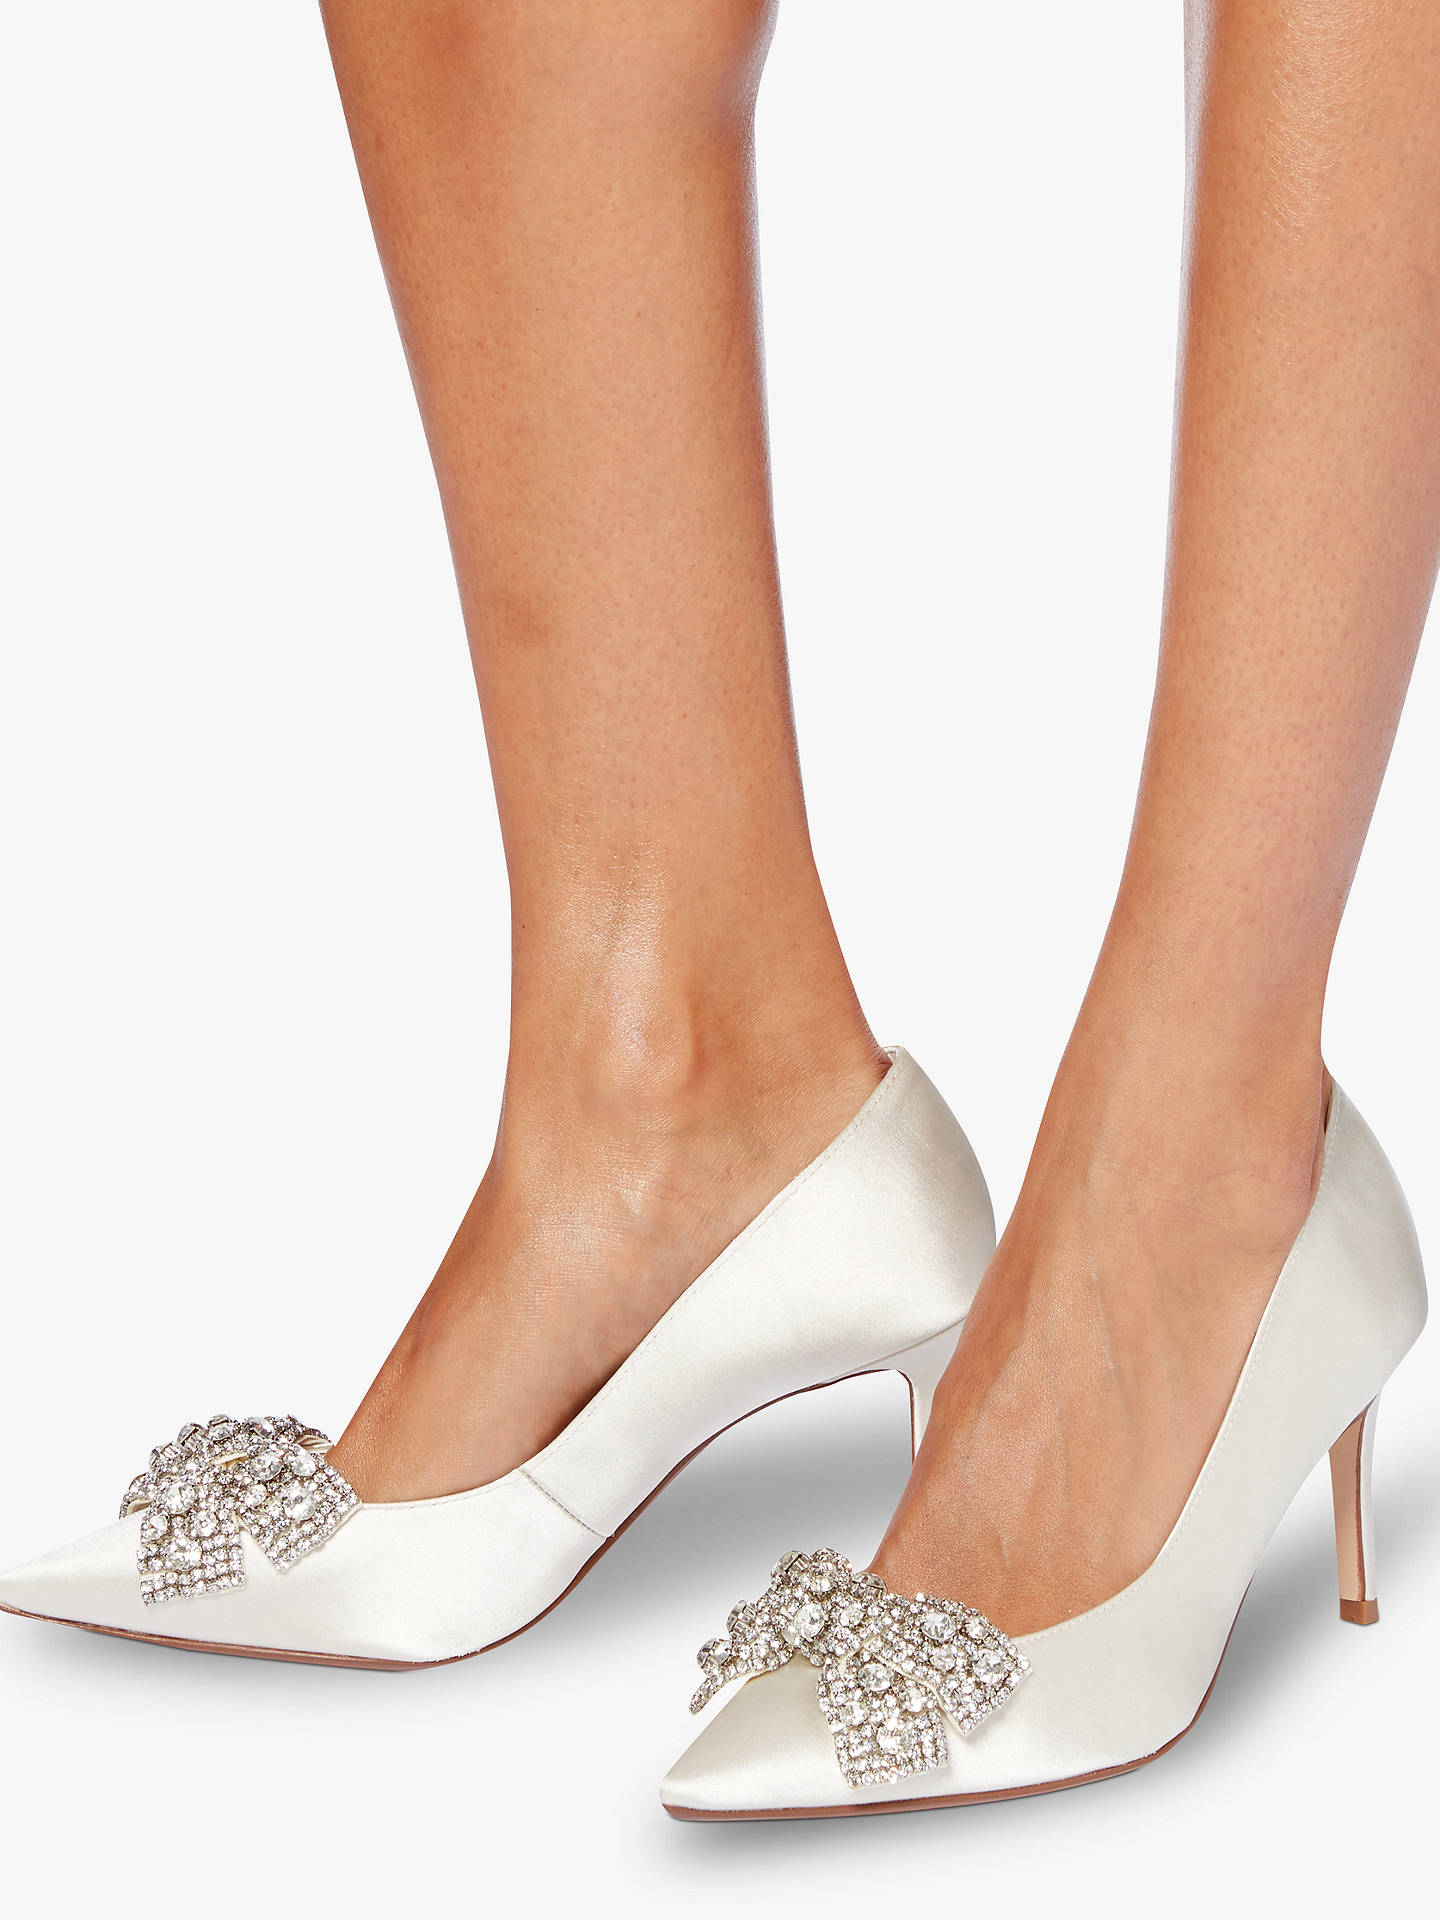 cb885bed525 ... Buy Dune Bridal Collection Beaubelle Stiletto Heeled Court Shoes